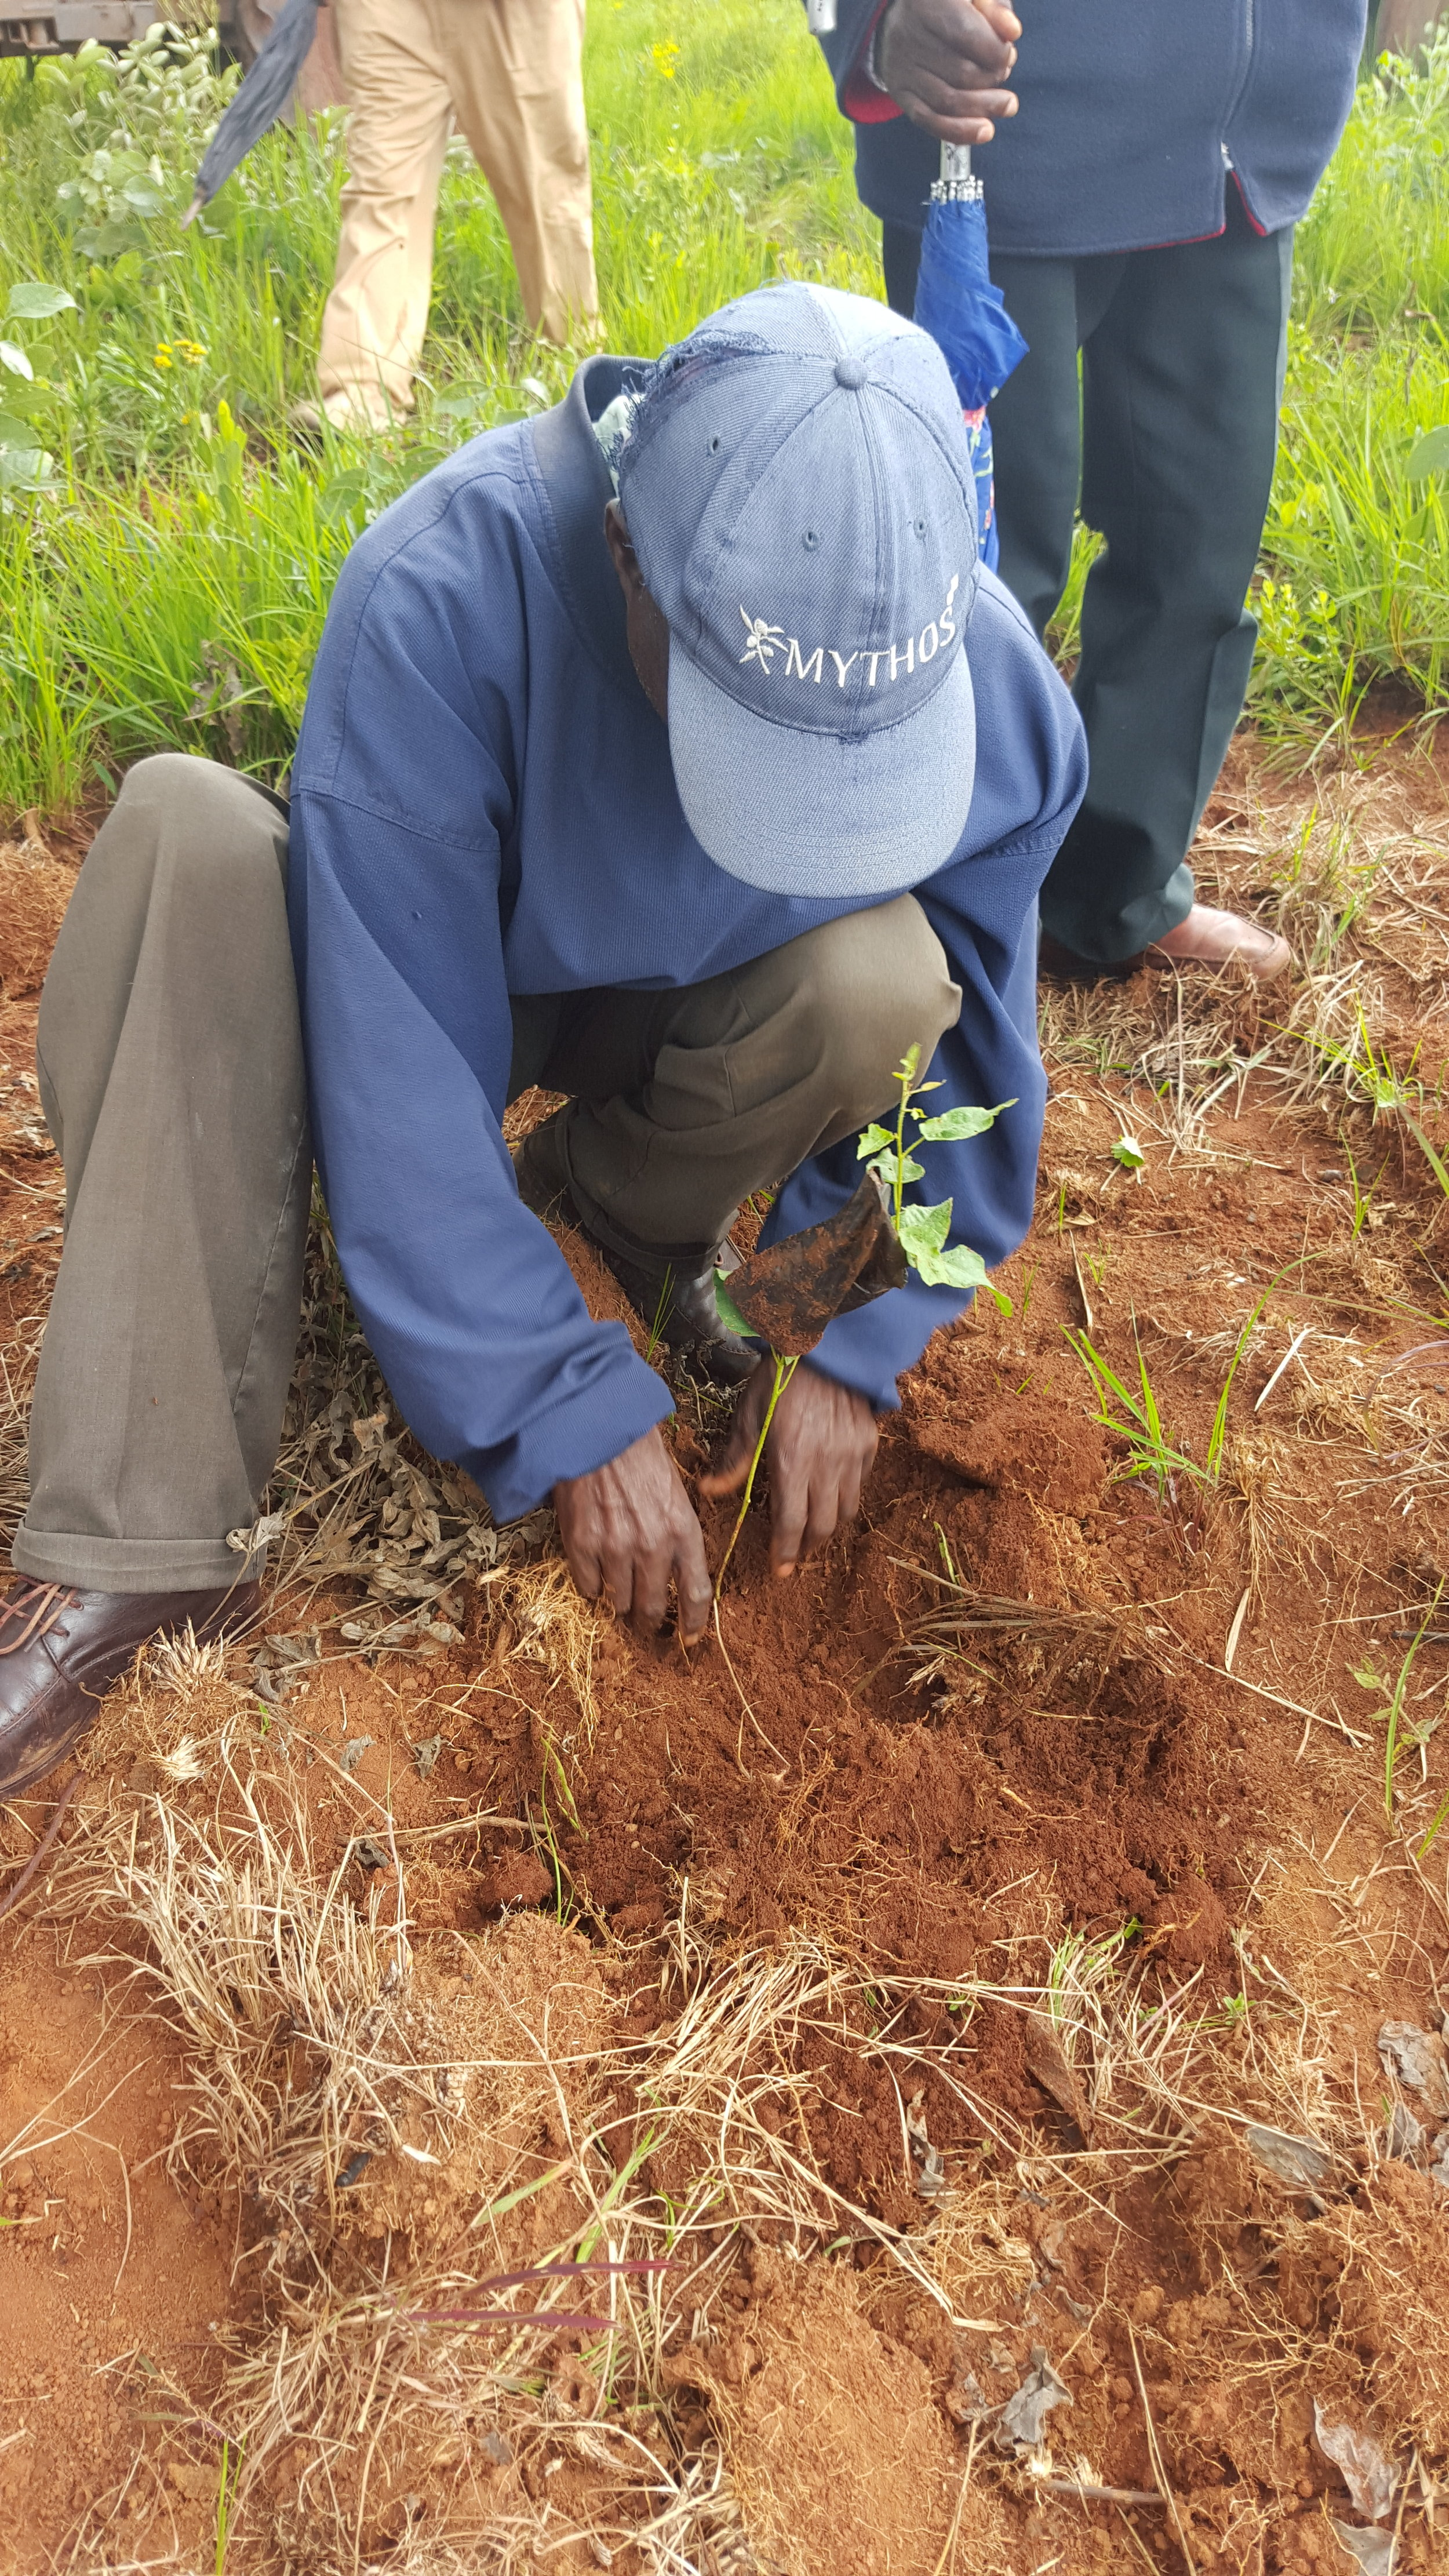 Planting the seedling in the field